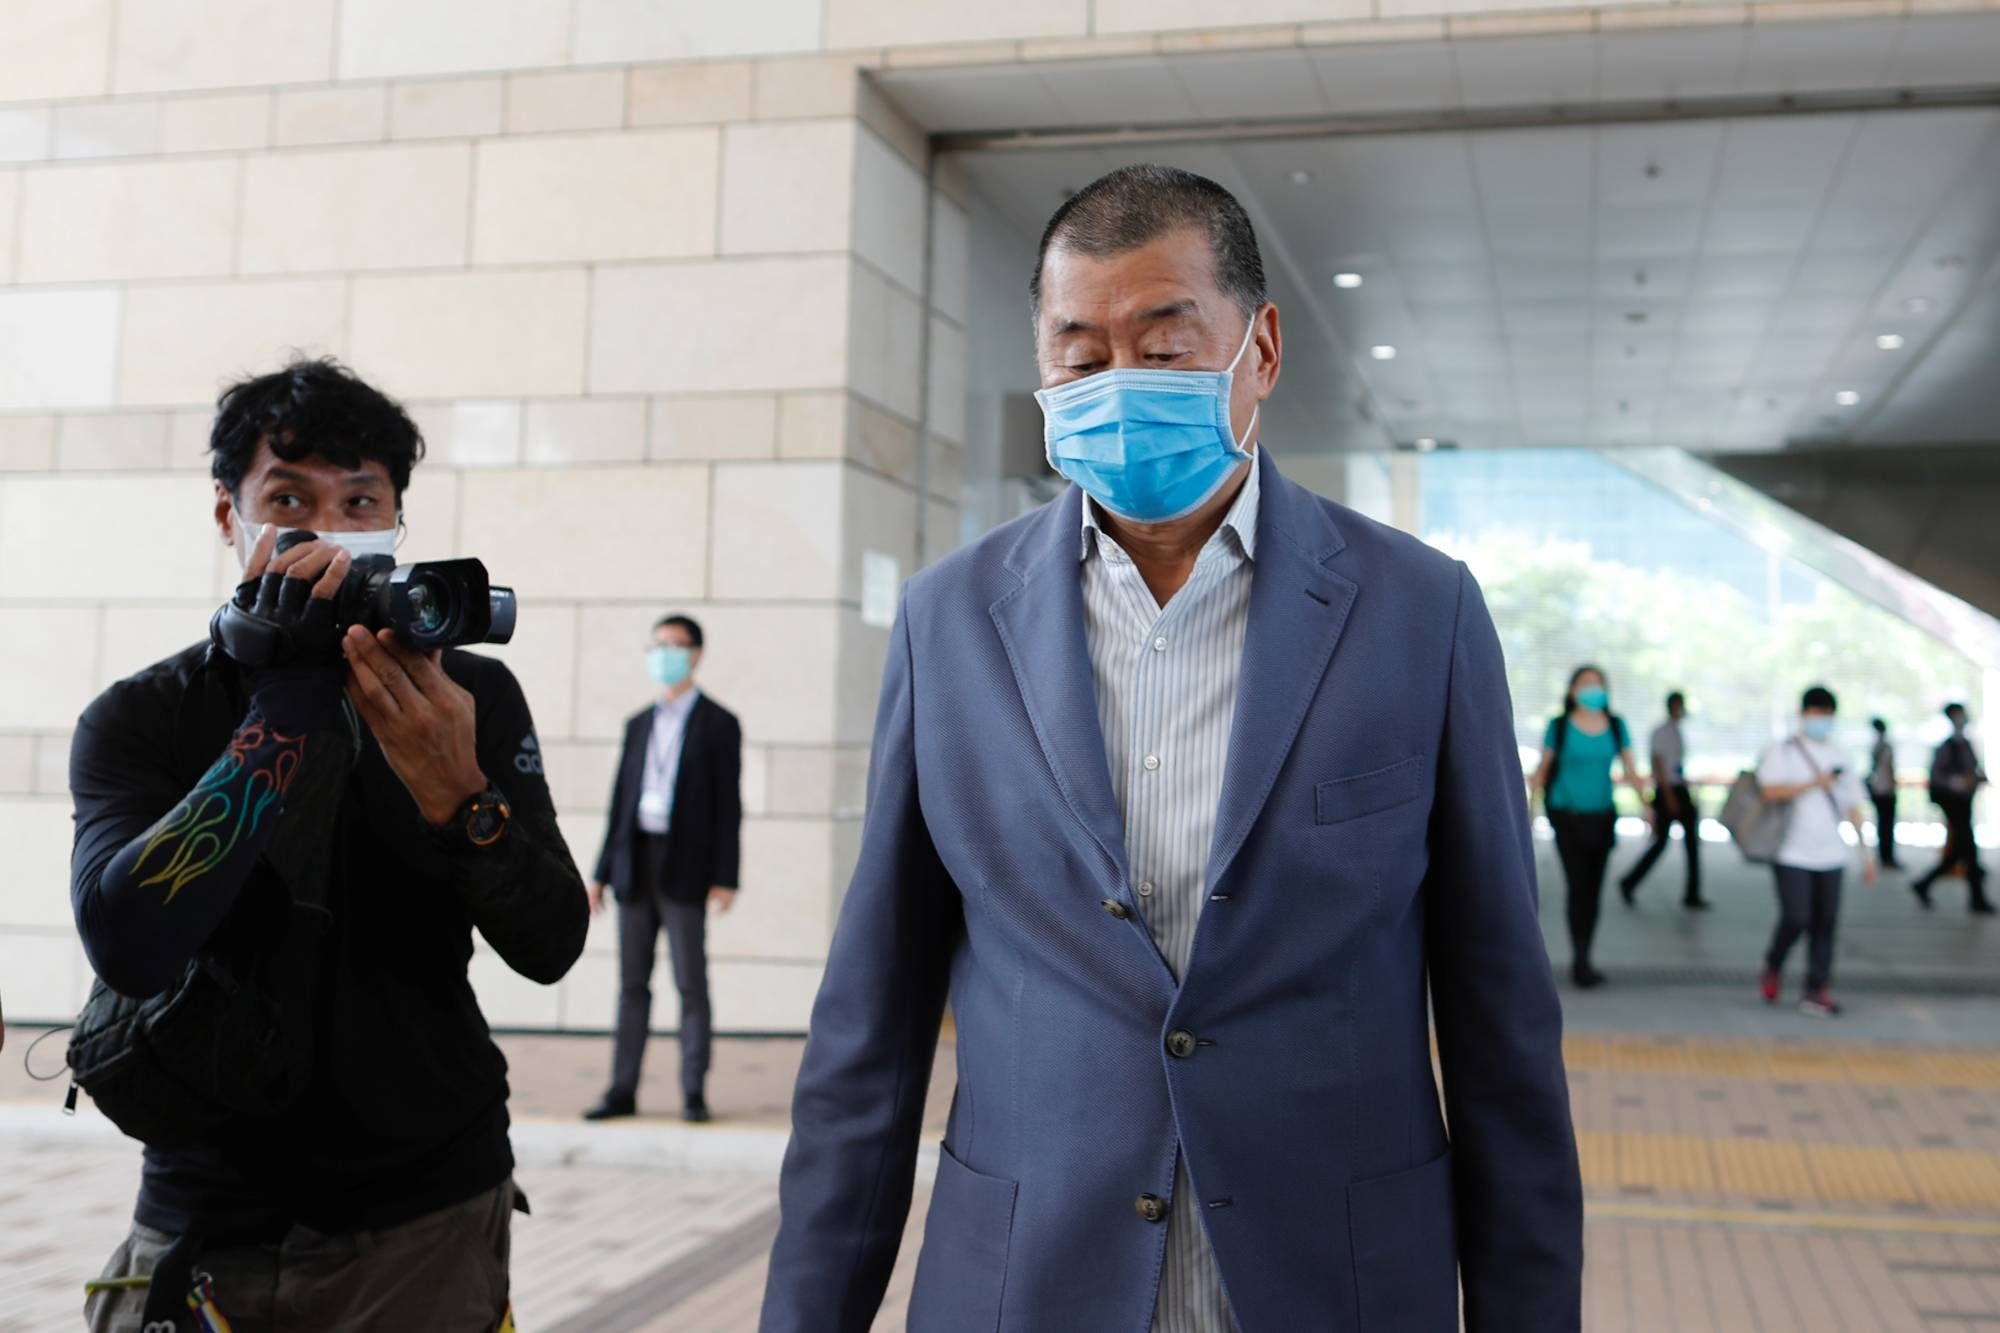 Media mogul Jimmy Lai founder of Apple Daily, arrives West Kowloon Magistrates' Courts to facing a criminal intimidation charge last week. | REUTERS